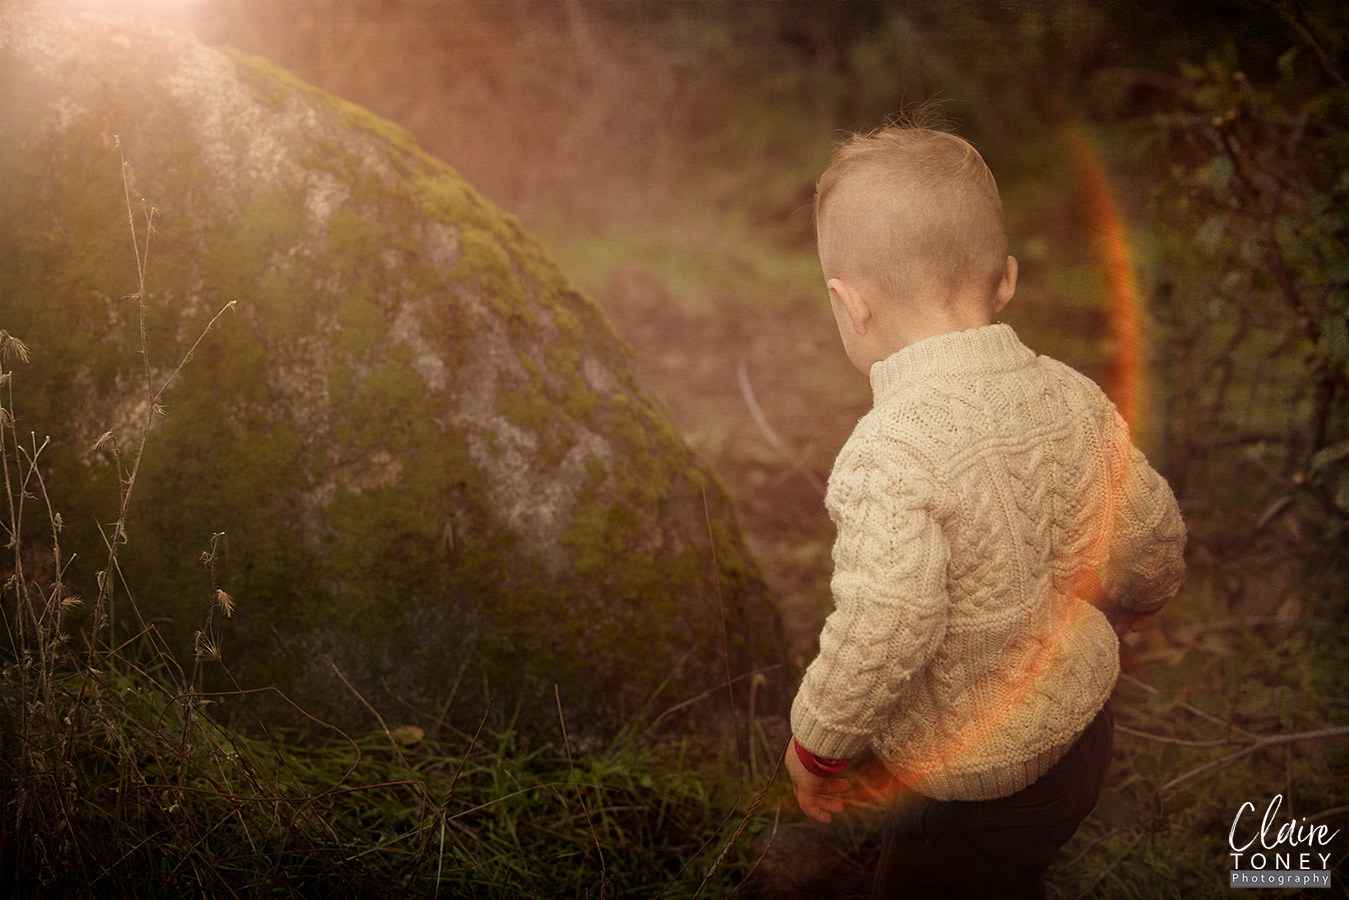 Young boy turned away, with a sun flare on the right side of the photograph.